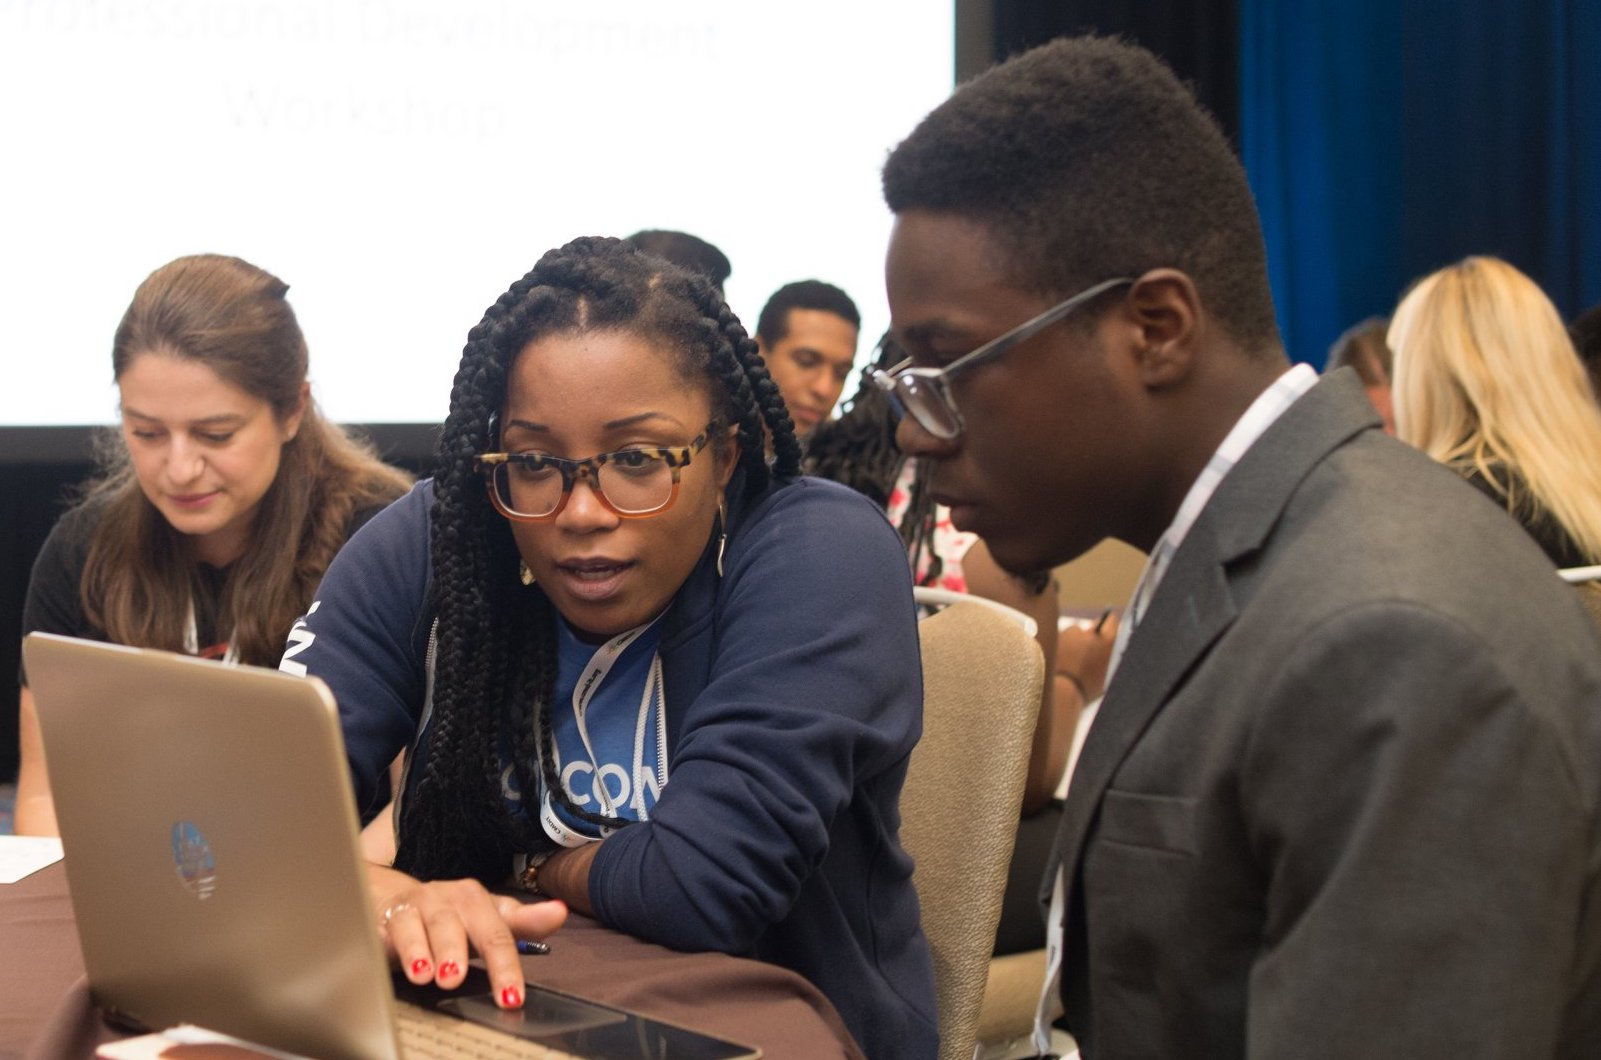 Two students working on a laptop together at the 2019 Tapia Student Professional Development Workshop